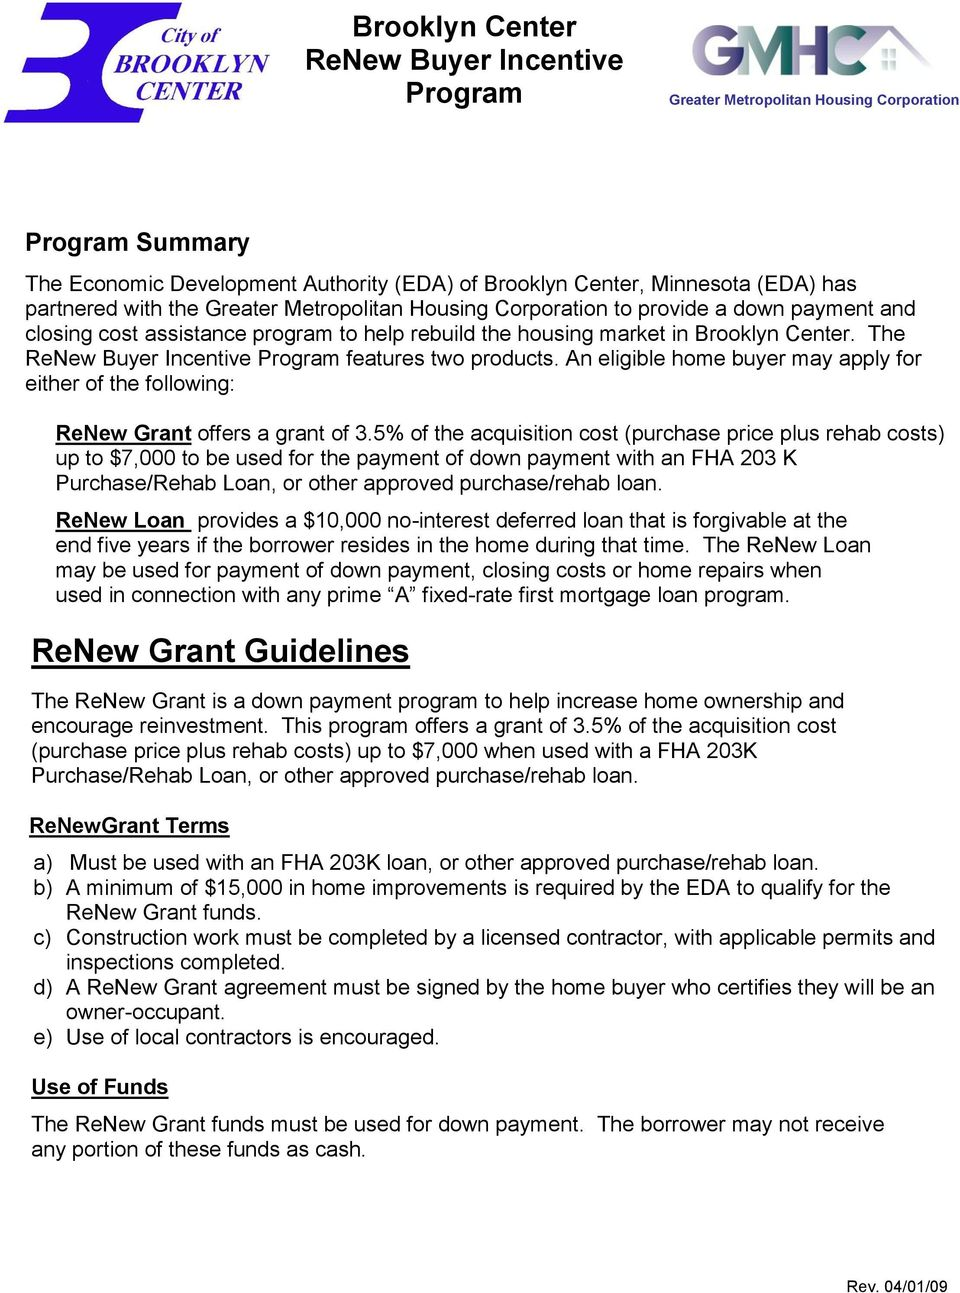 The ReNew Buyer Incentive Program features two products. An eligible home buyer may apply for either of the following: ReNew Grant offers a grant of 3.